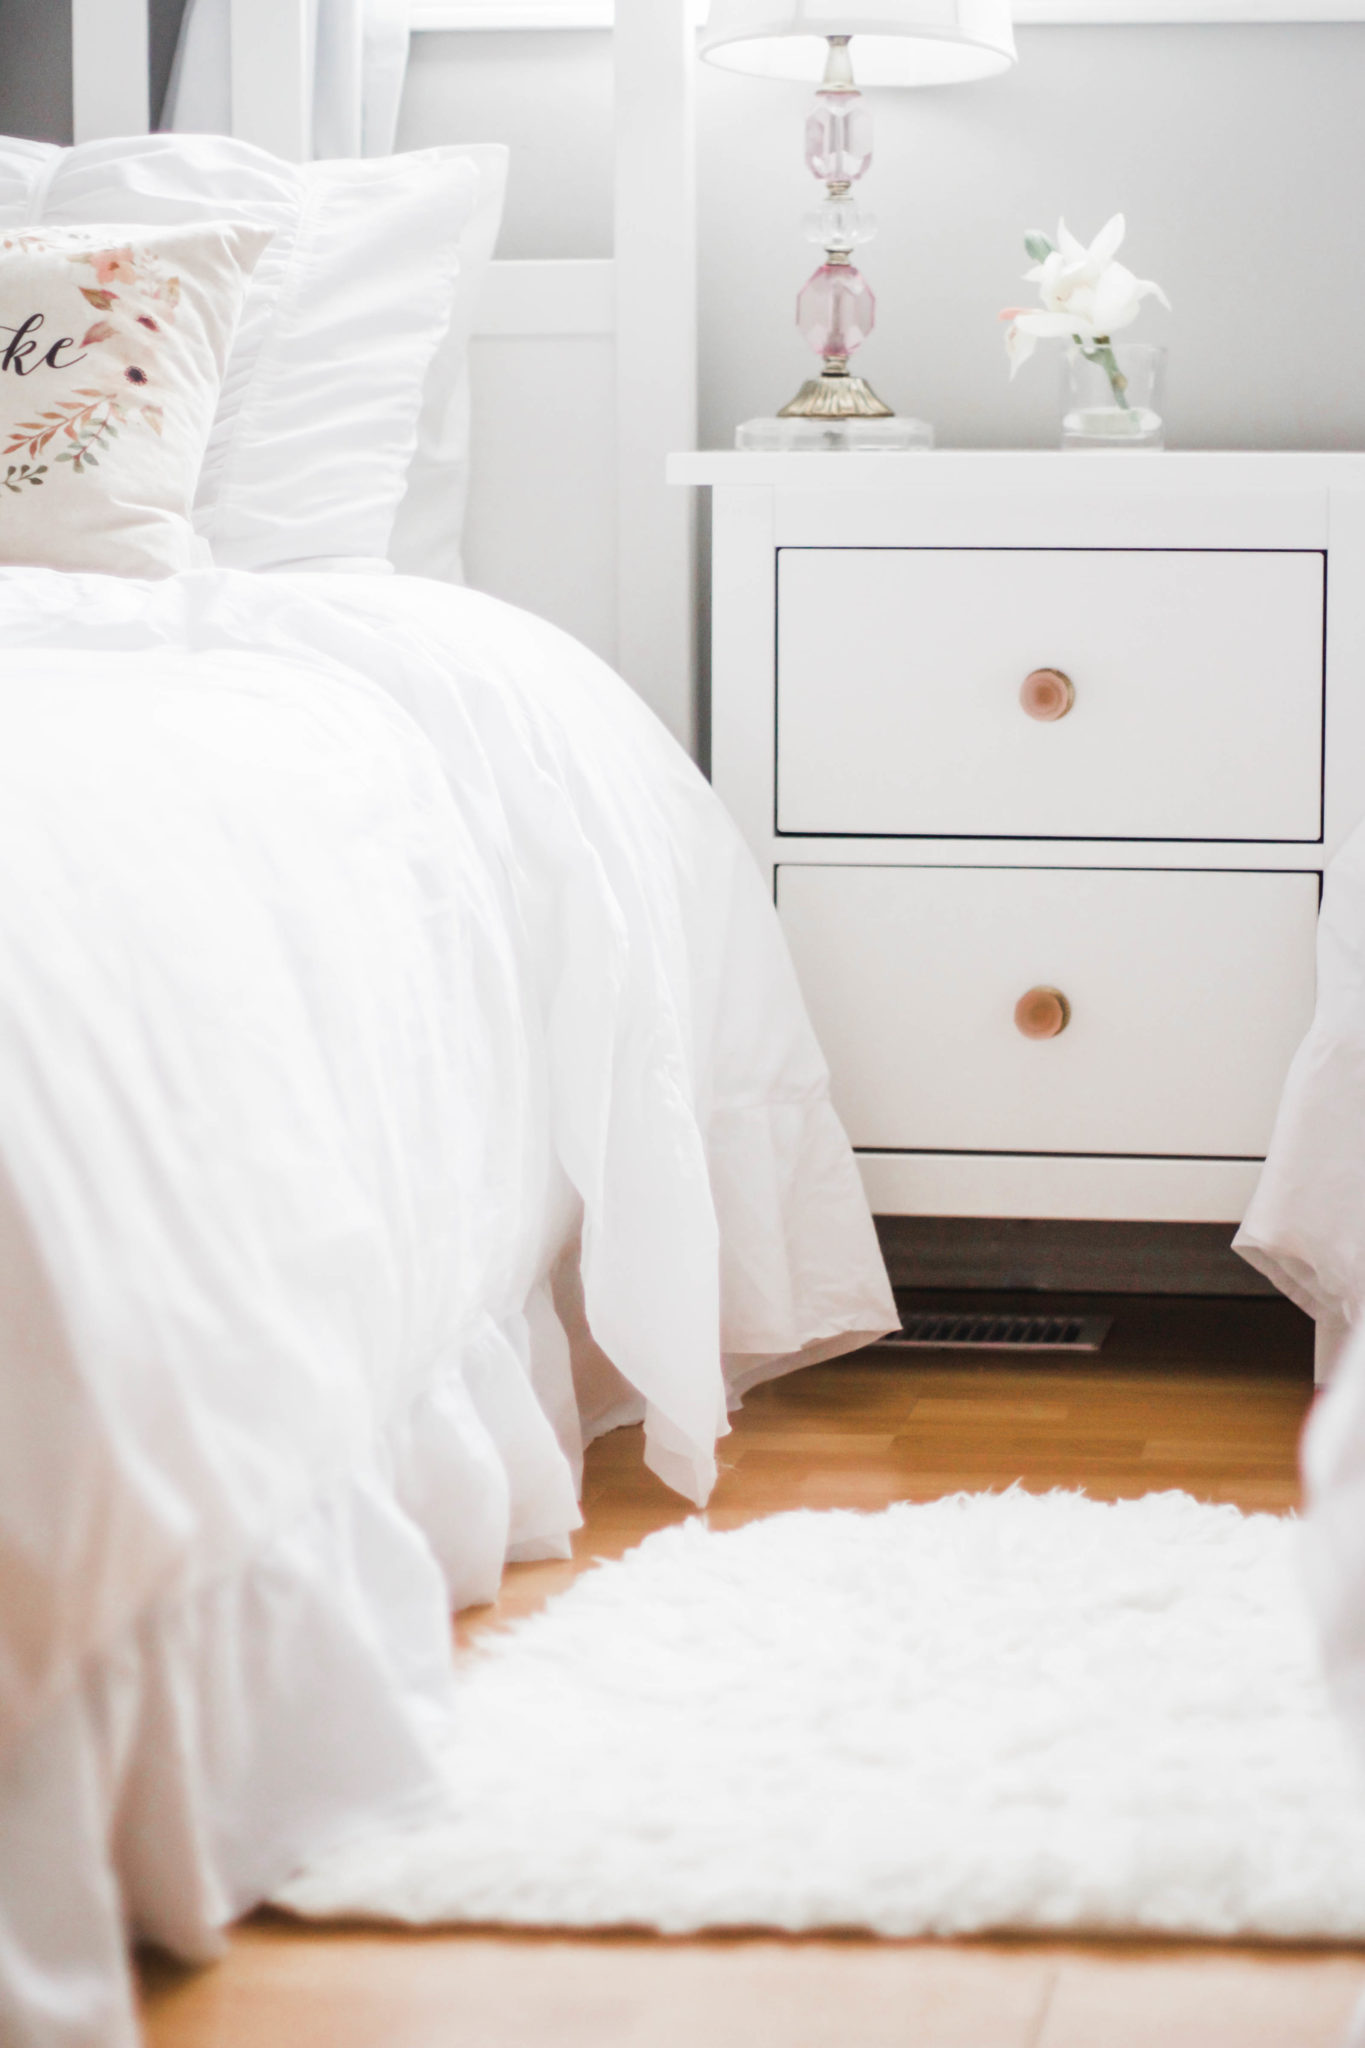 The Nightstand Again From Ikea Is Very Minimal And Exactly What I Wanted For Girls Hemnes Comes With Black Knobs So Swapped